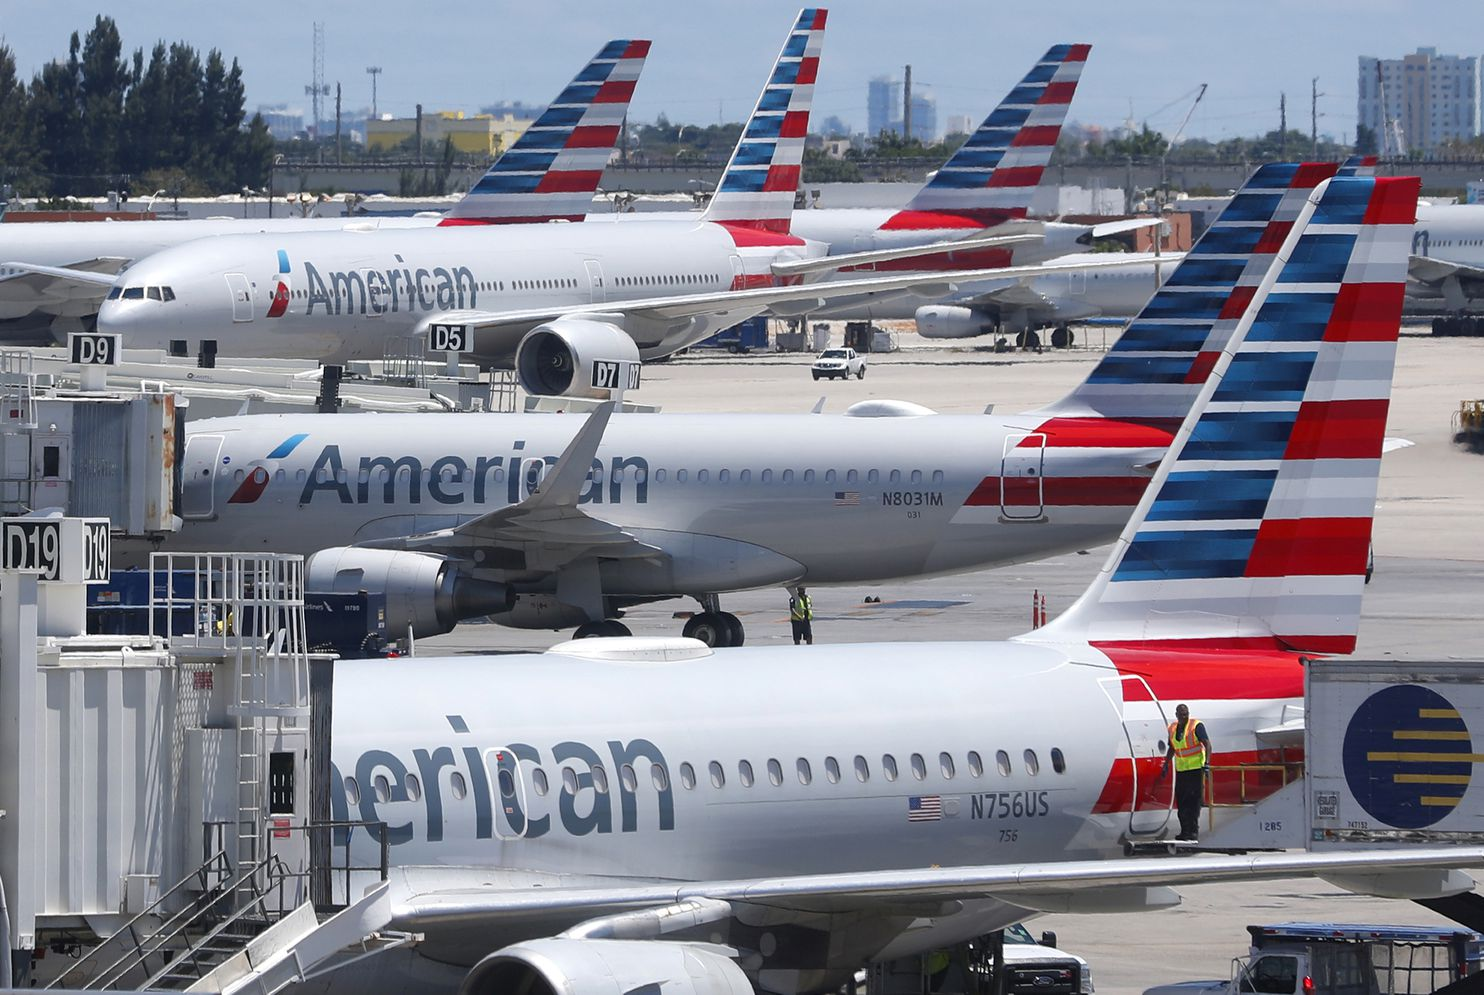 An American Airlines employee took Ashley Barno's number from the bag tag, then followed it in flight, says the lawsuit